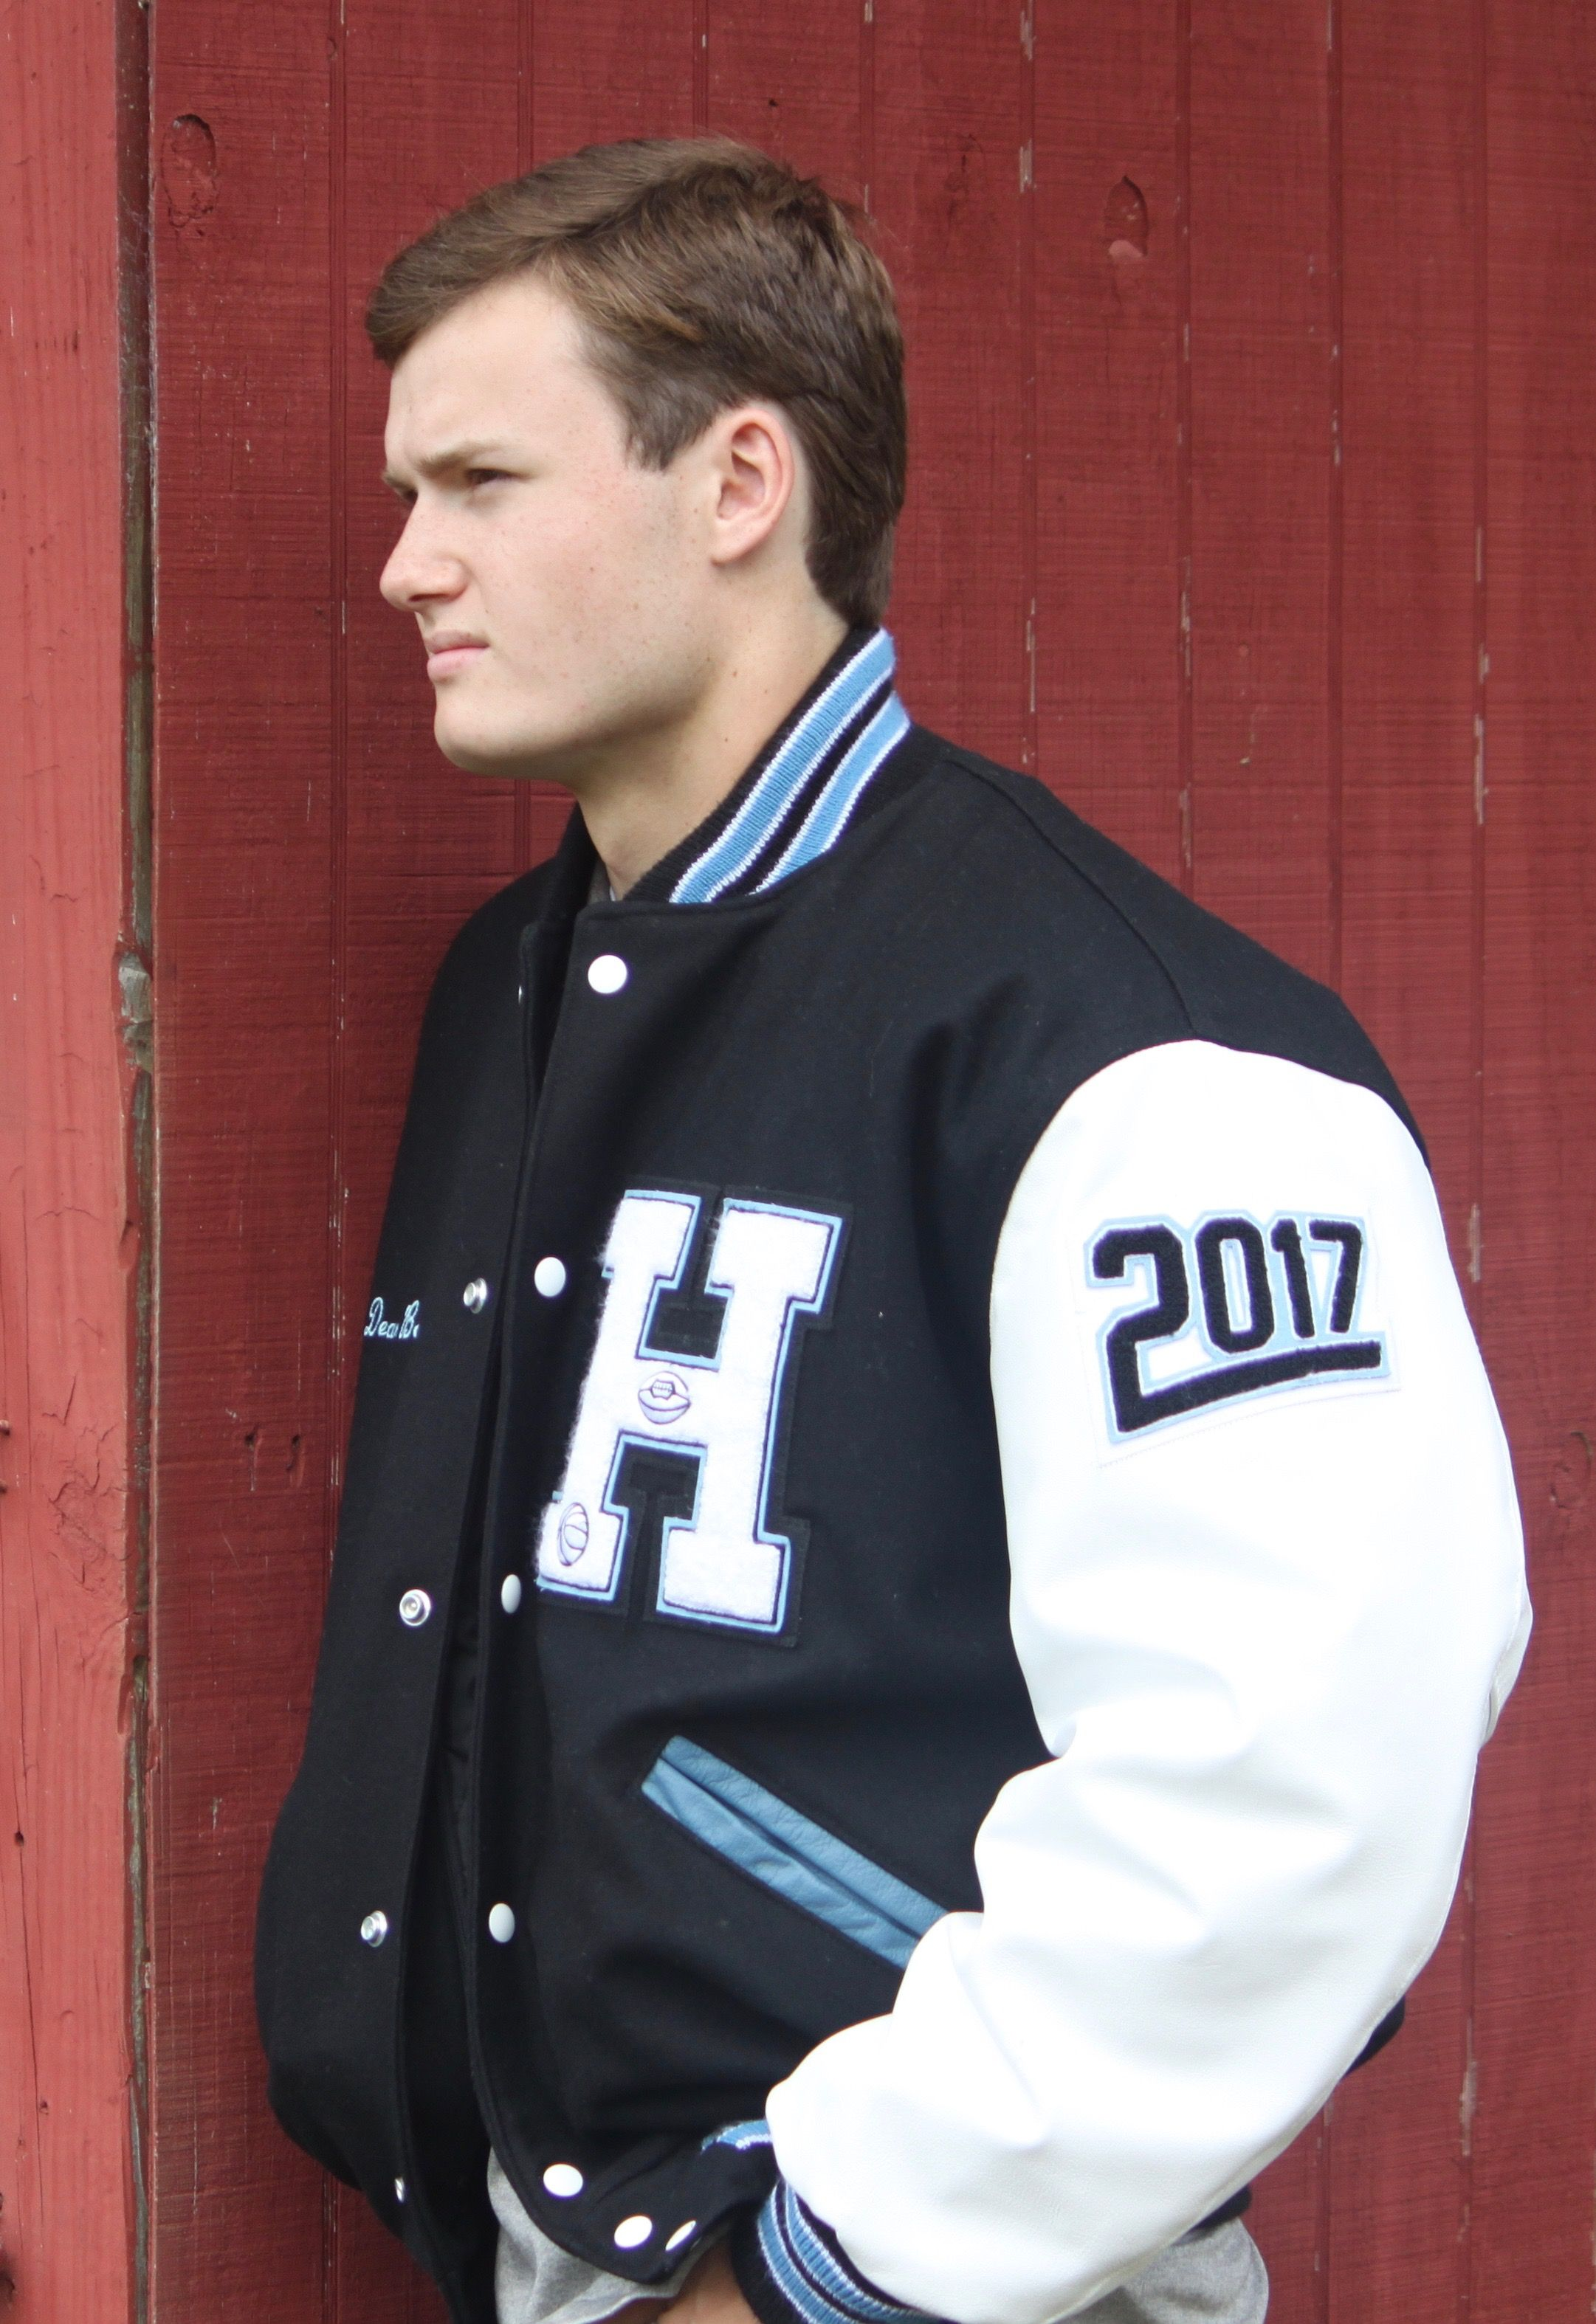 2017 boy senior picture letterman jacket football